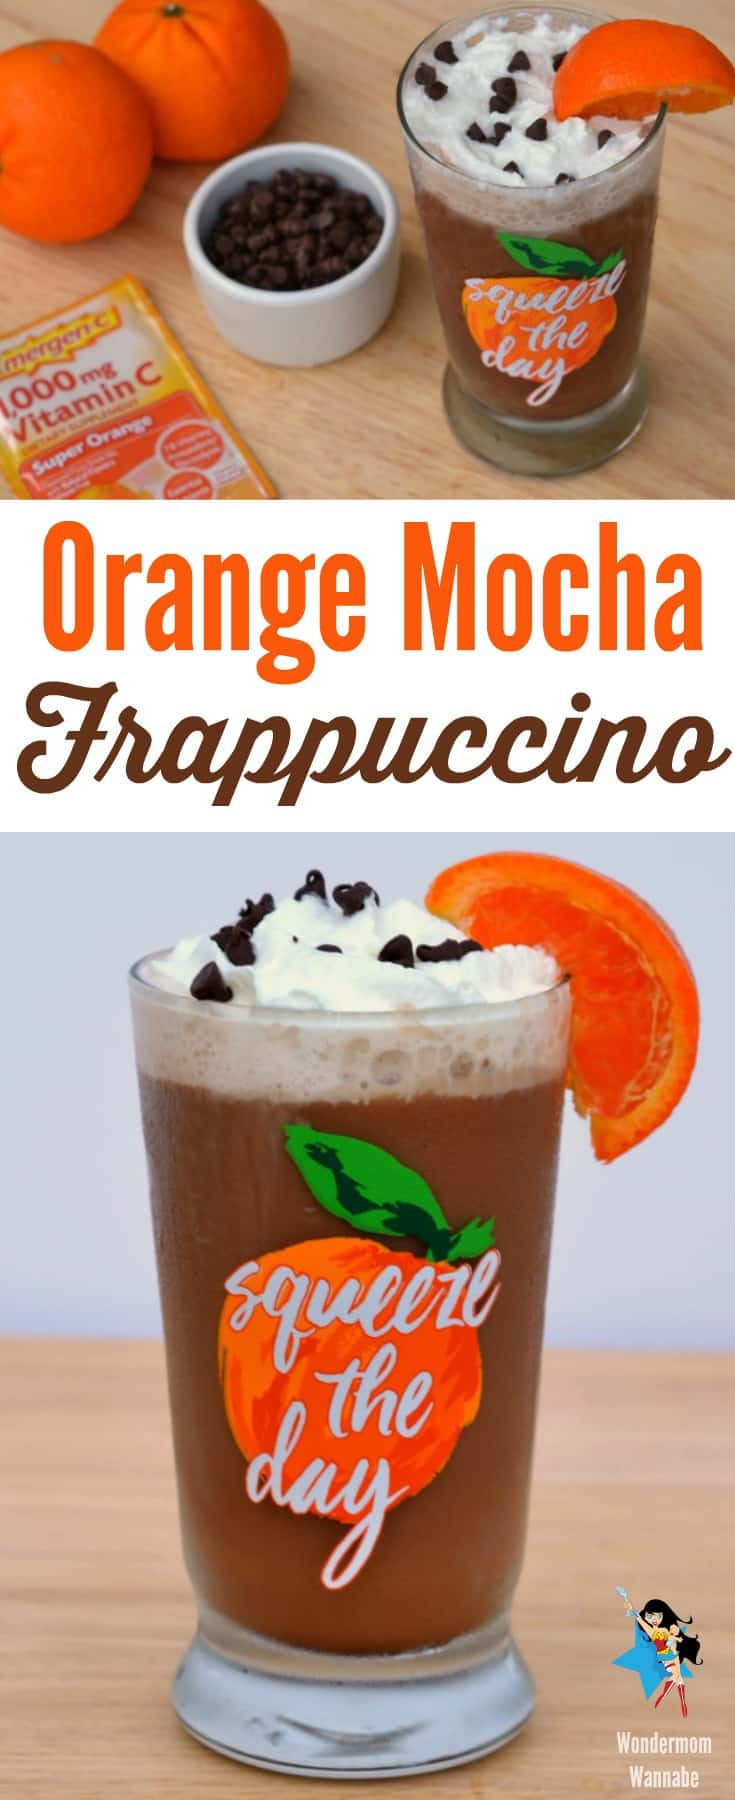 This orange mocha frappuccino is a delicious and healthy way to wake up and get energized!